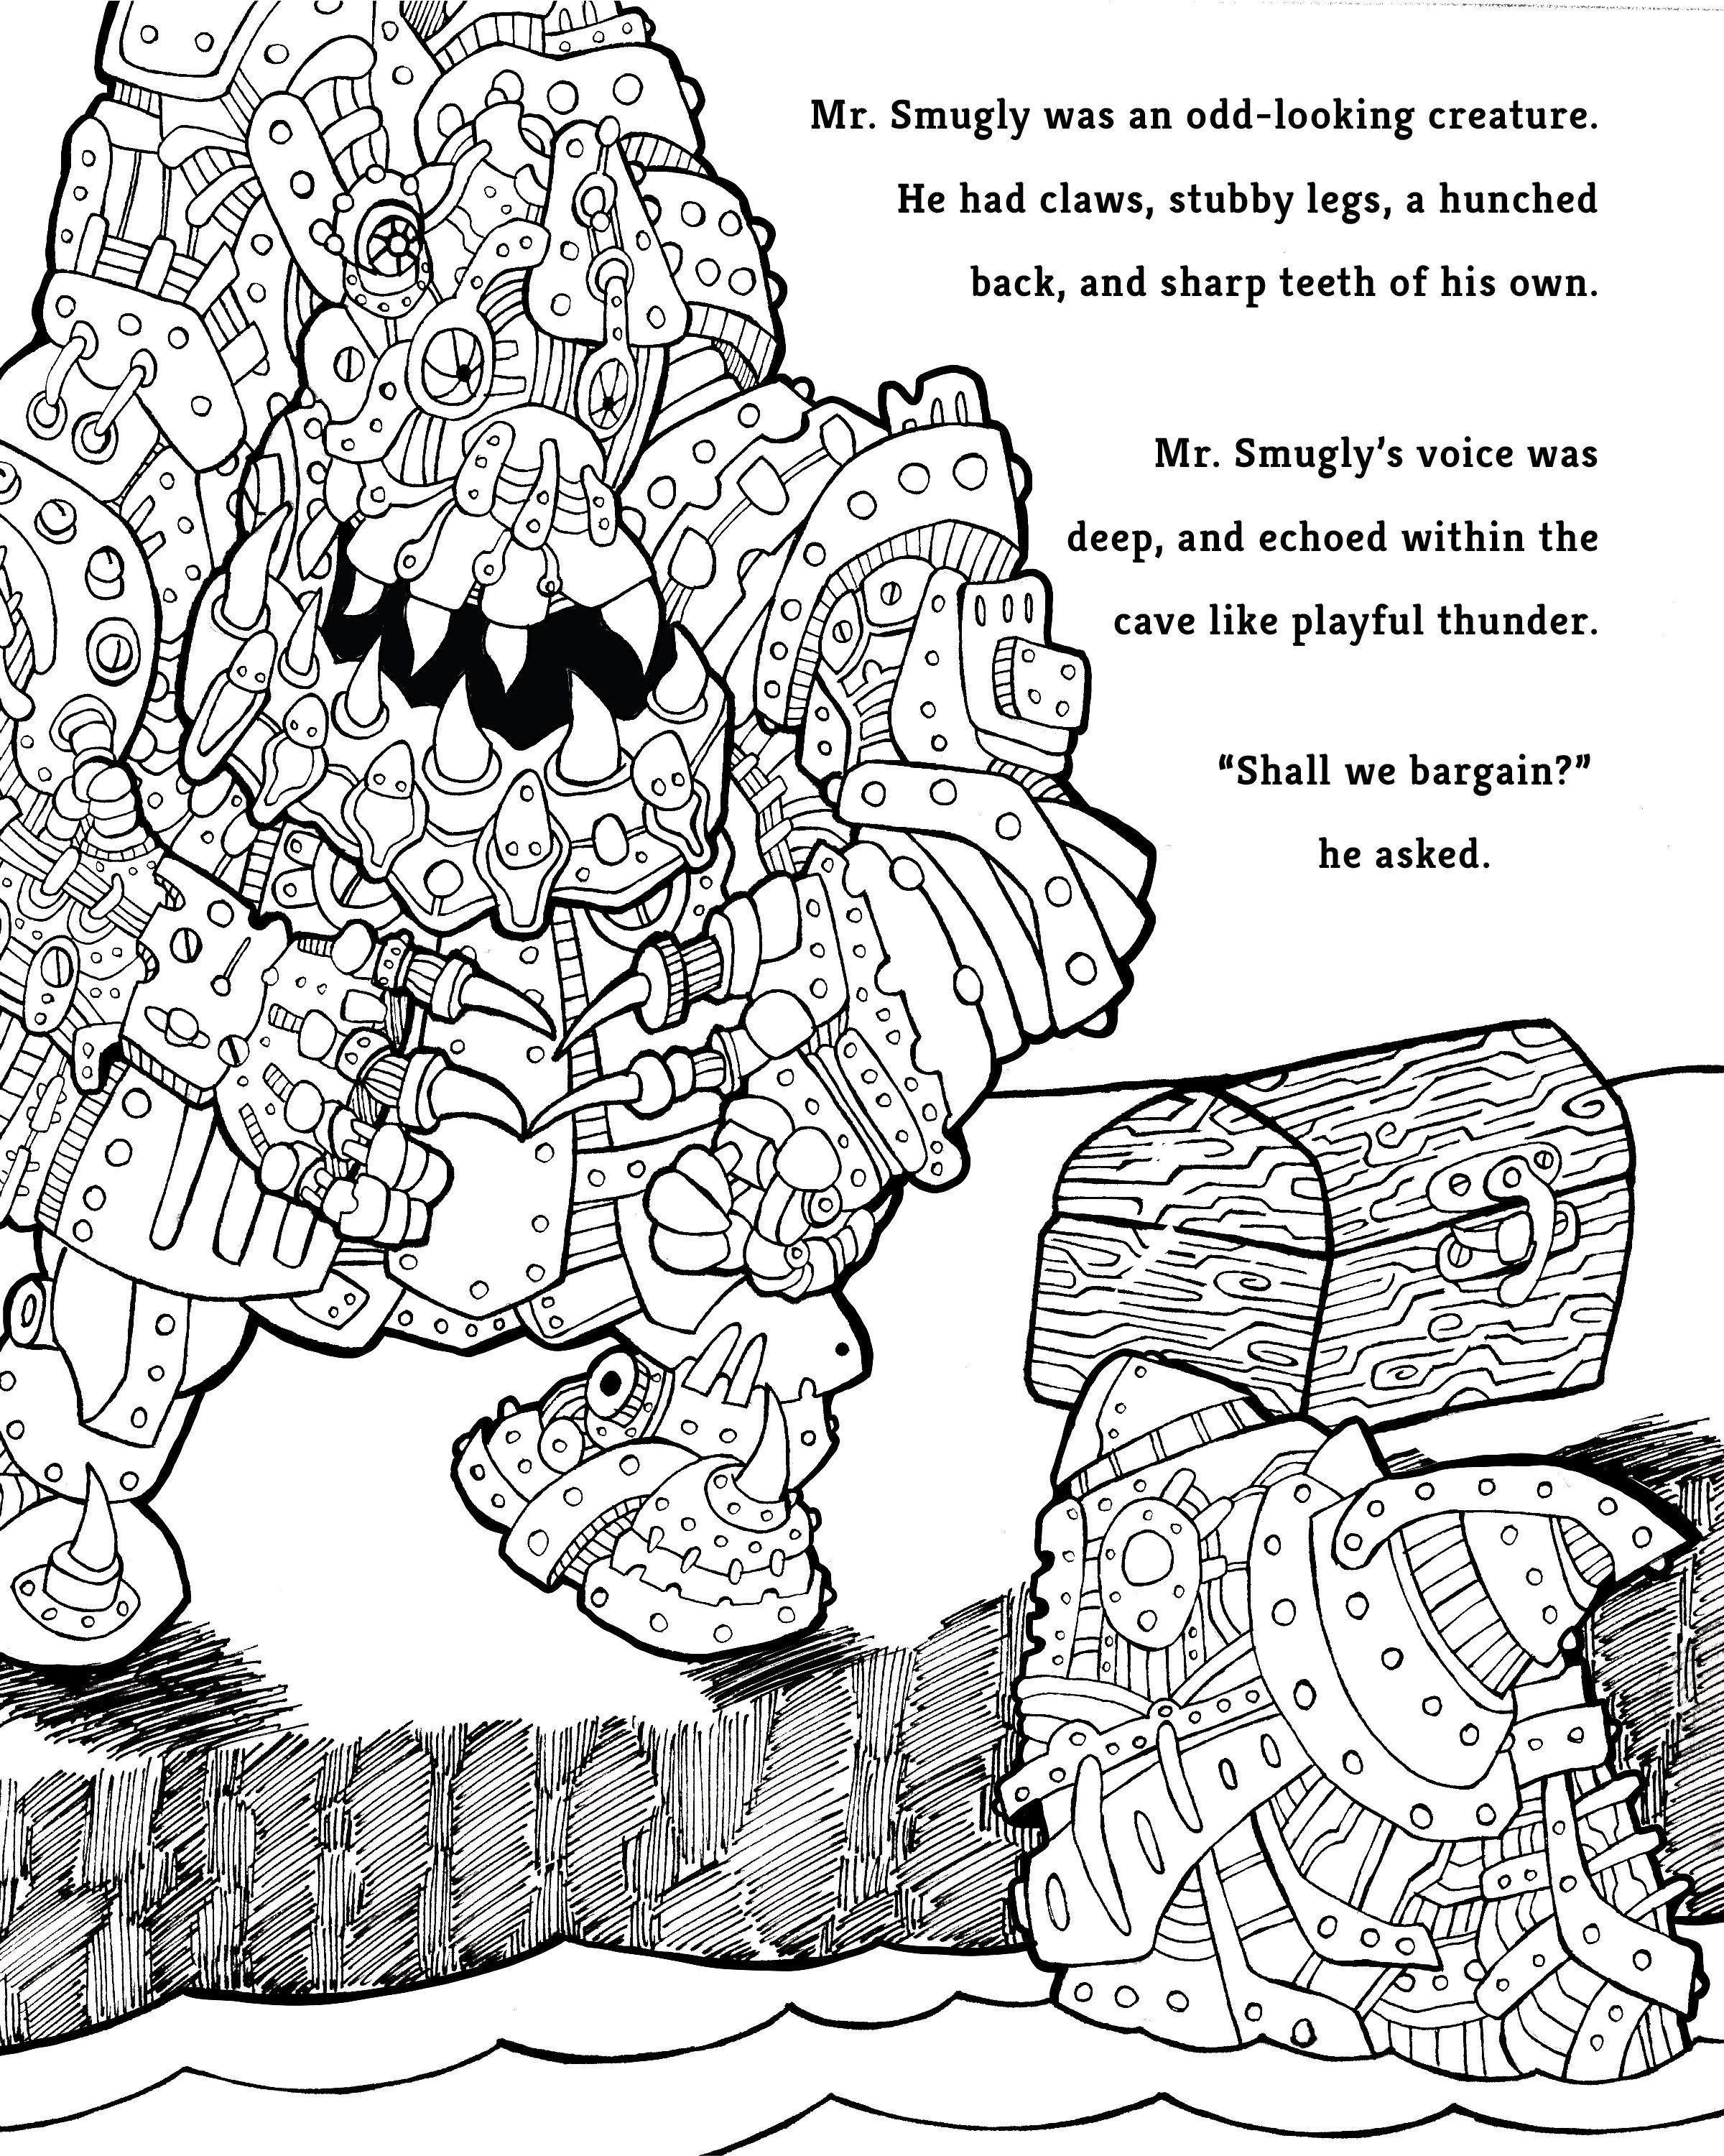 Coloring Book Album Cover New Coloring Book Pages Activities Vinyl Teeth Free Printing Ap Monster Truck Coloring Pages Horse Coloring Books Kids Coloring Books